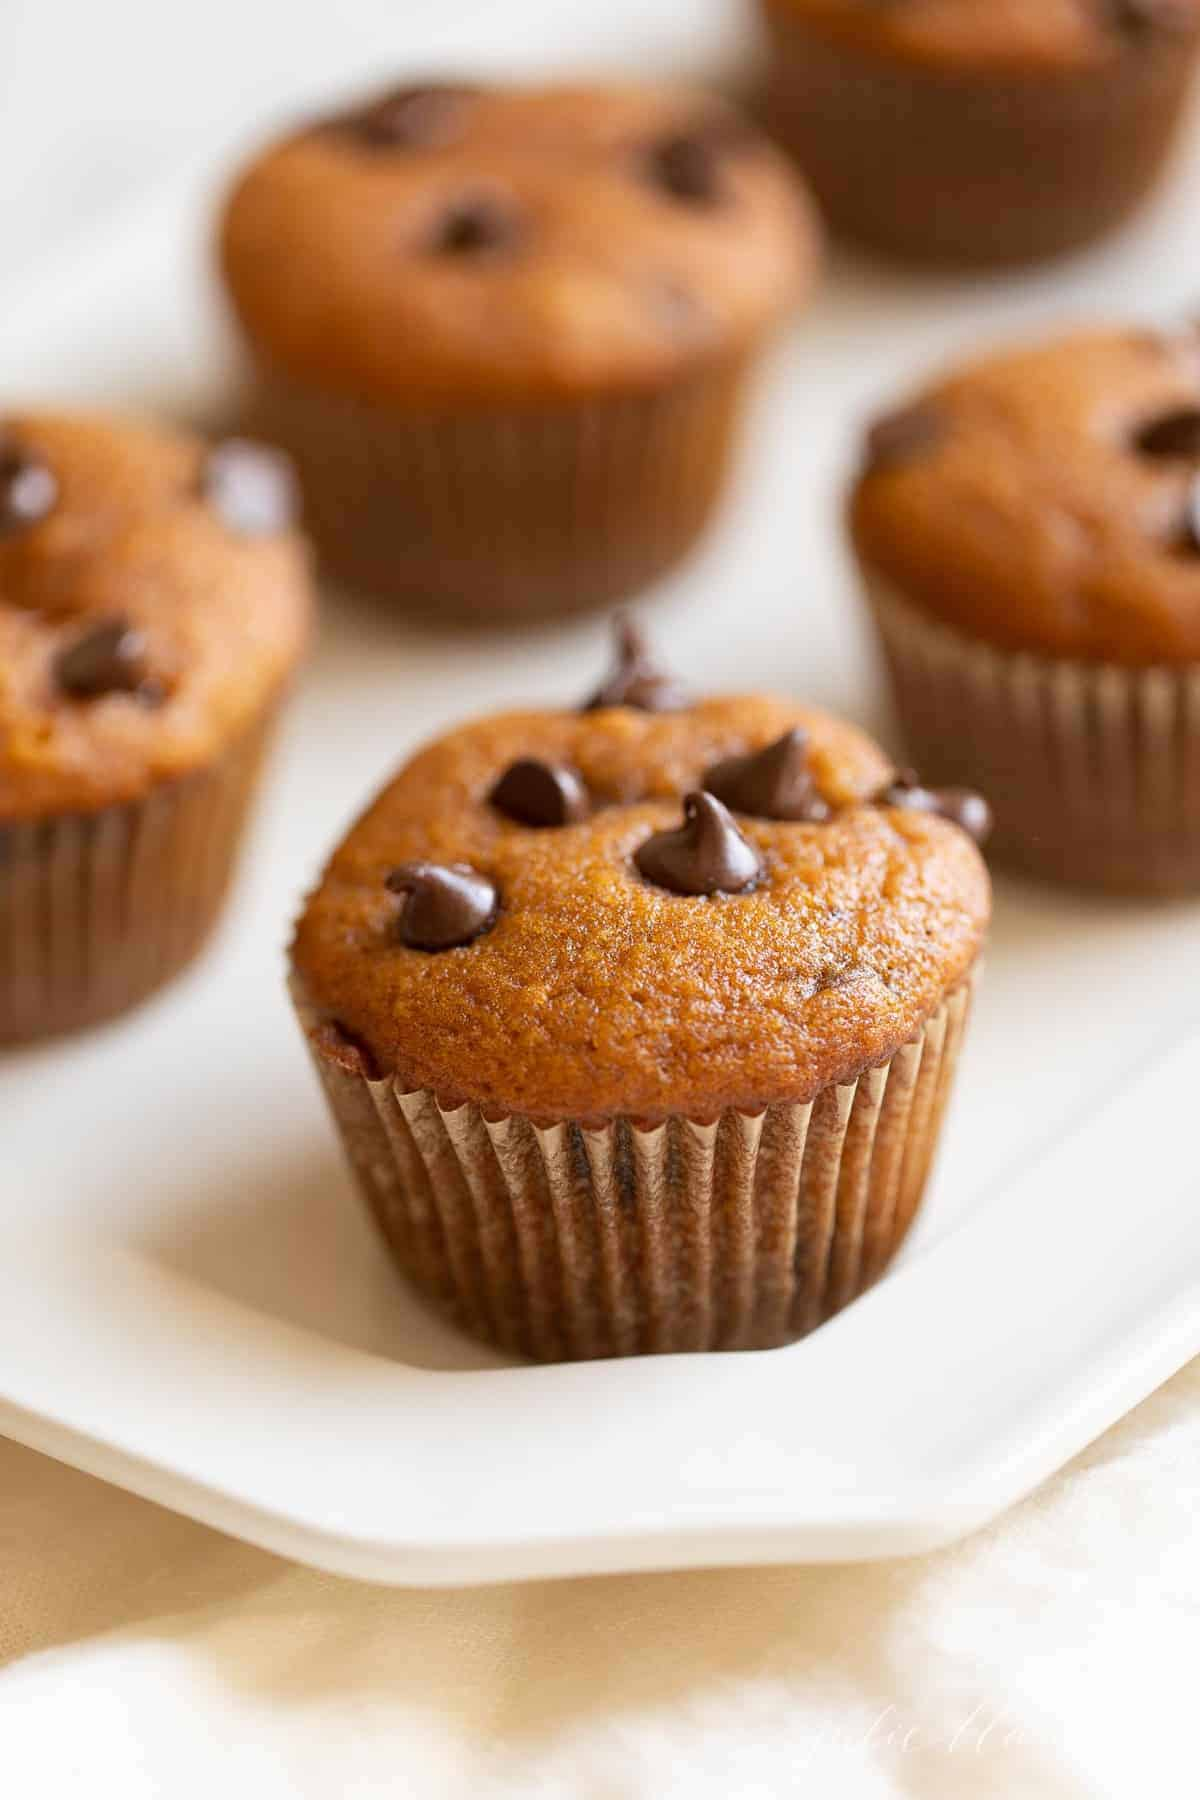 pumpkin muffins with chocolate chips on top on a platter